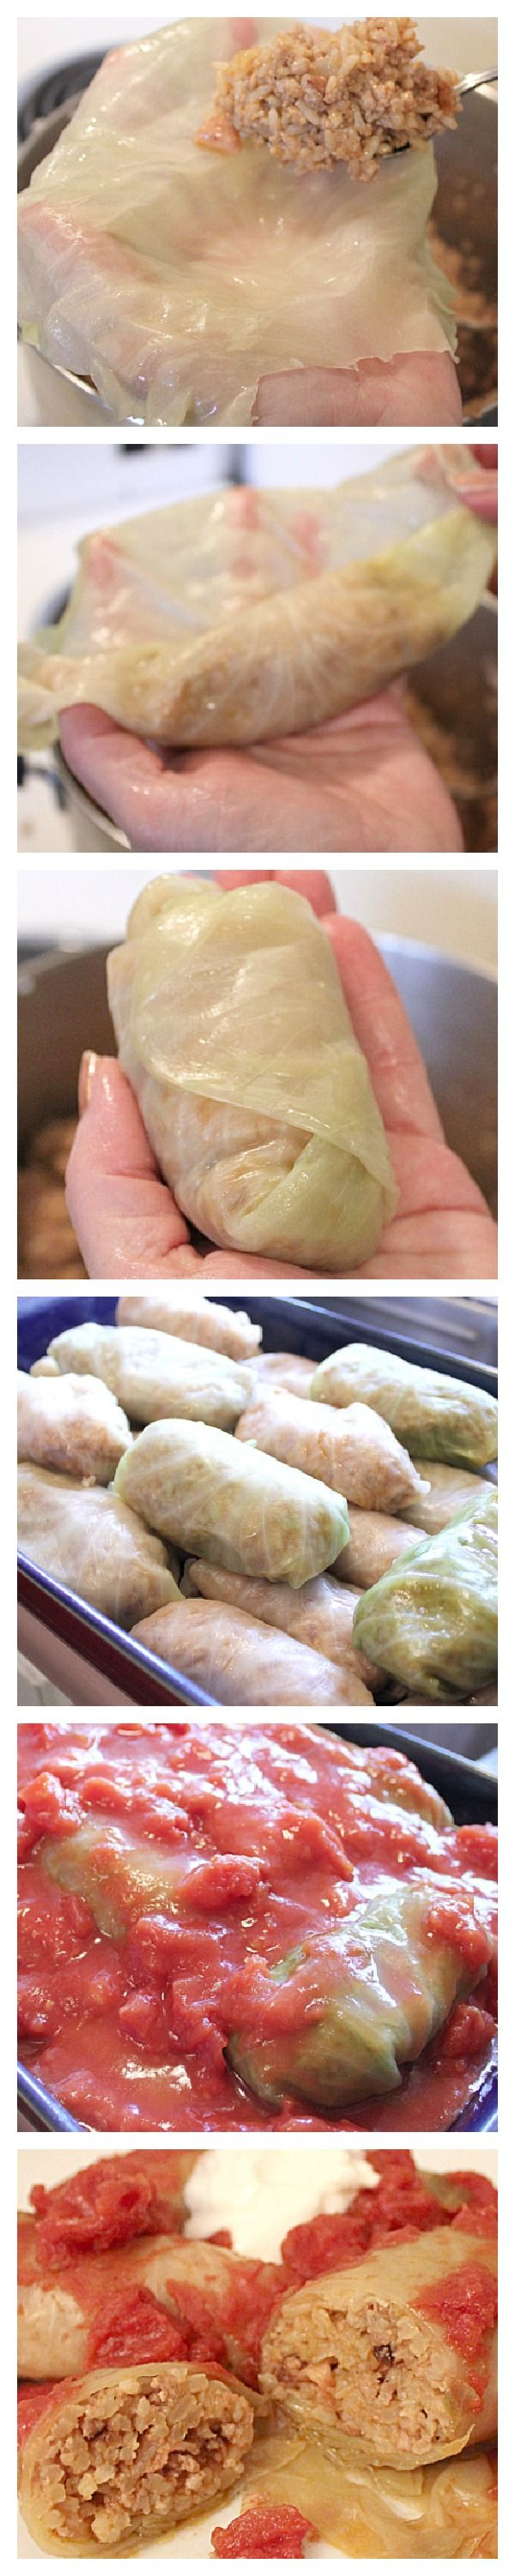 How to roll a cabbage rolls - recipe included! ** Freeze & dethaew to soften leaves instead of boiling & better to handle this way**